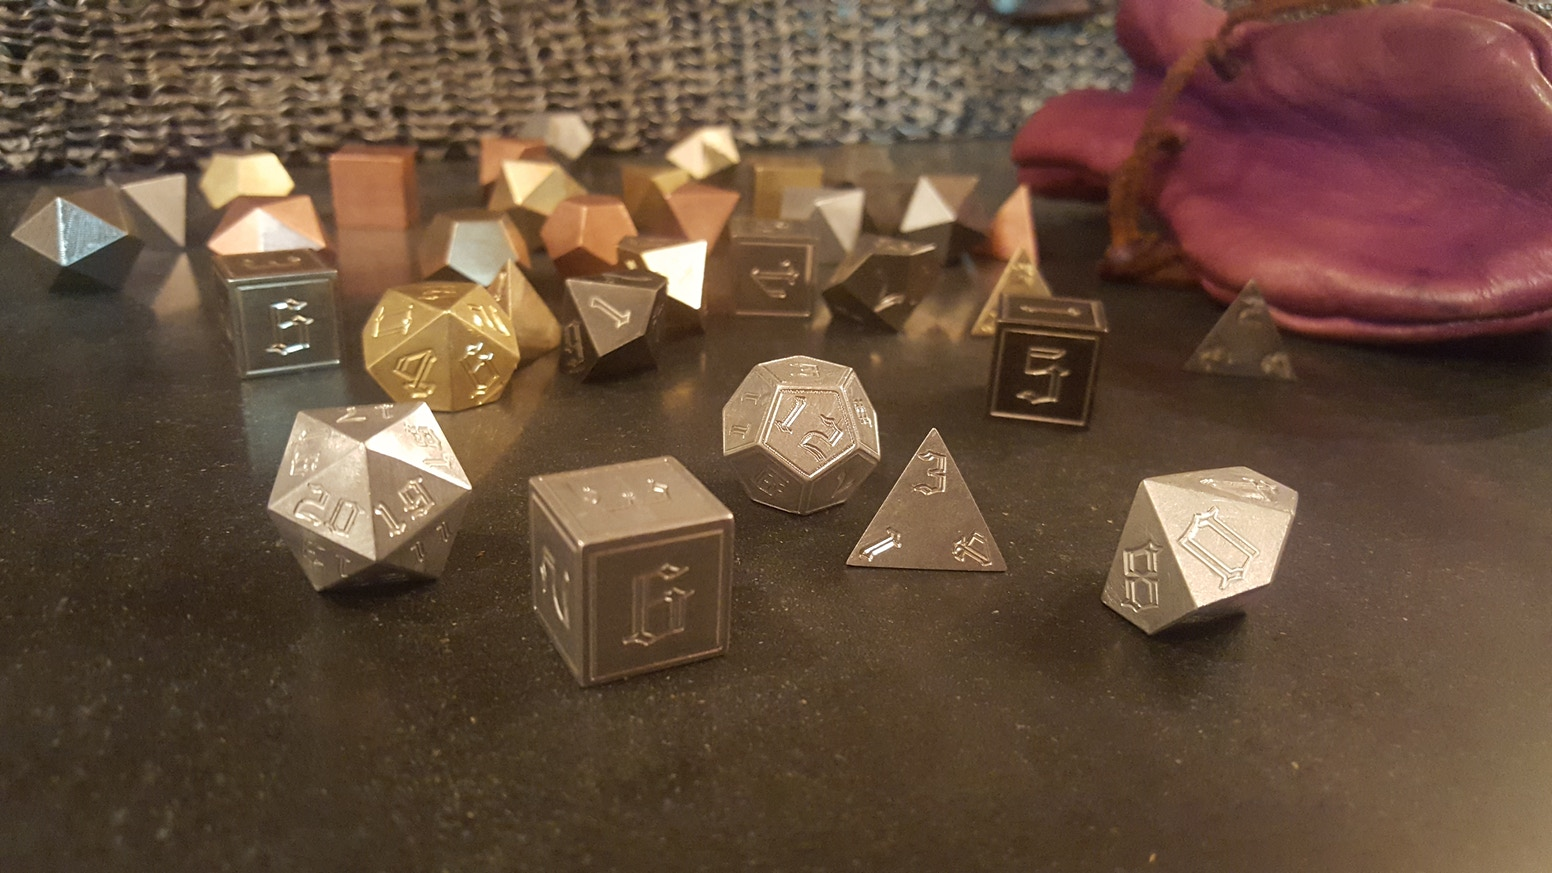 A line of cool precision metal gaming dice that will be the envy of gamer and non-gamer alike.